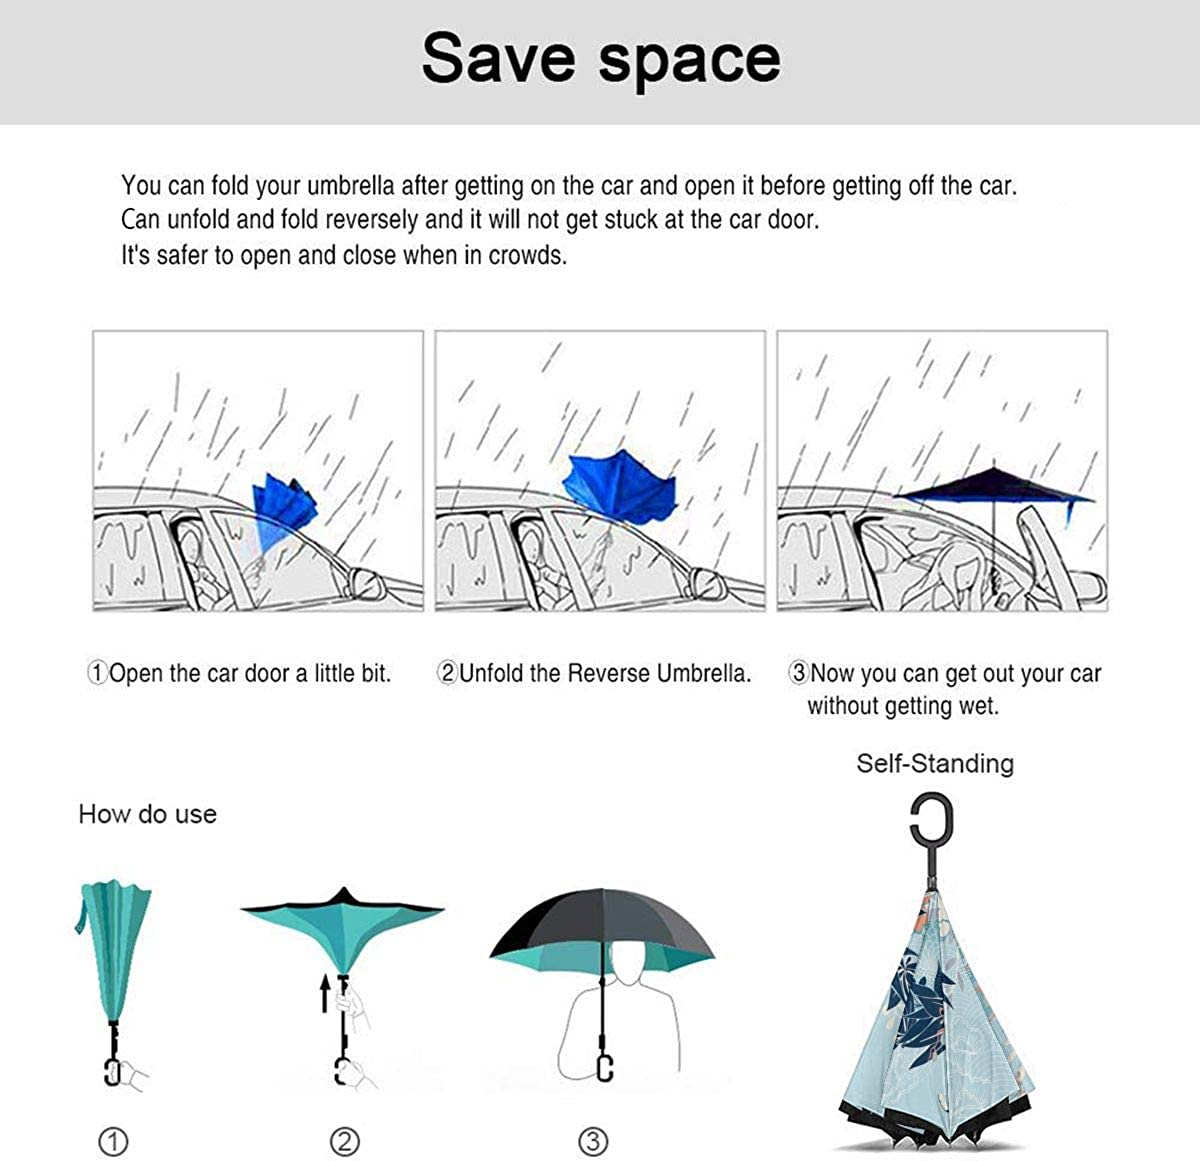 Reverse Umbrella Double Layer Inverted Umbrellas For Car Rain Outdoor With C-Shaped Handle Kimono Motif With Crane And Flowers Customized